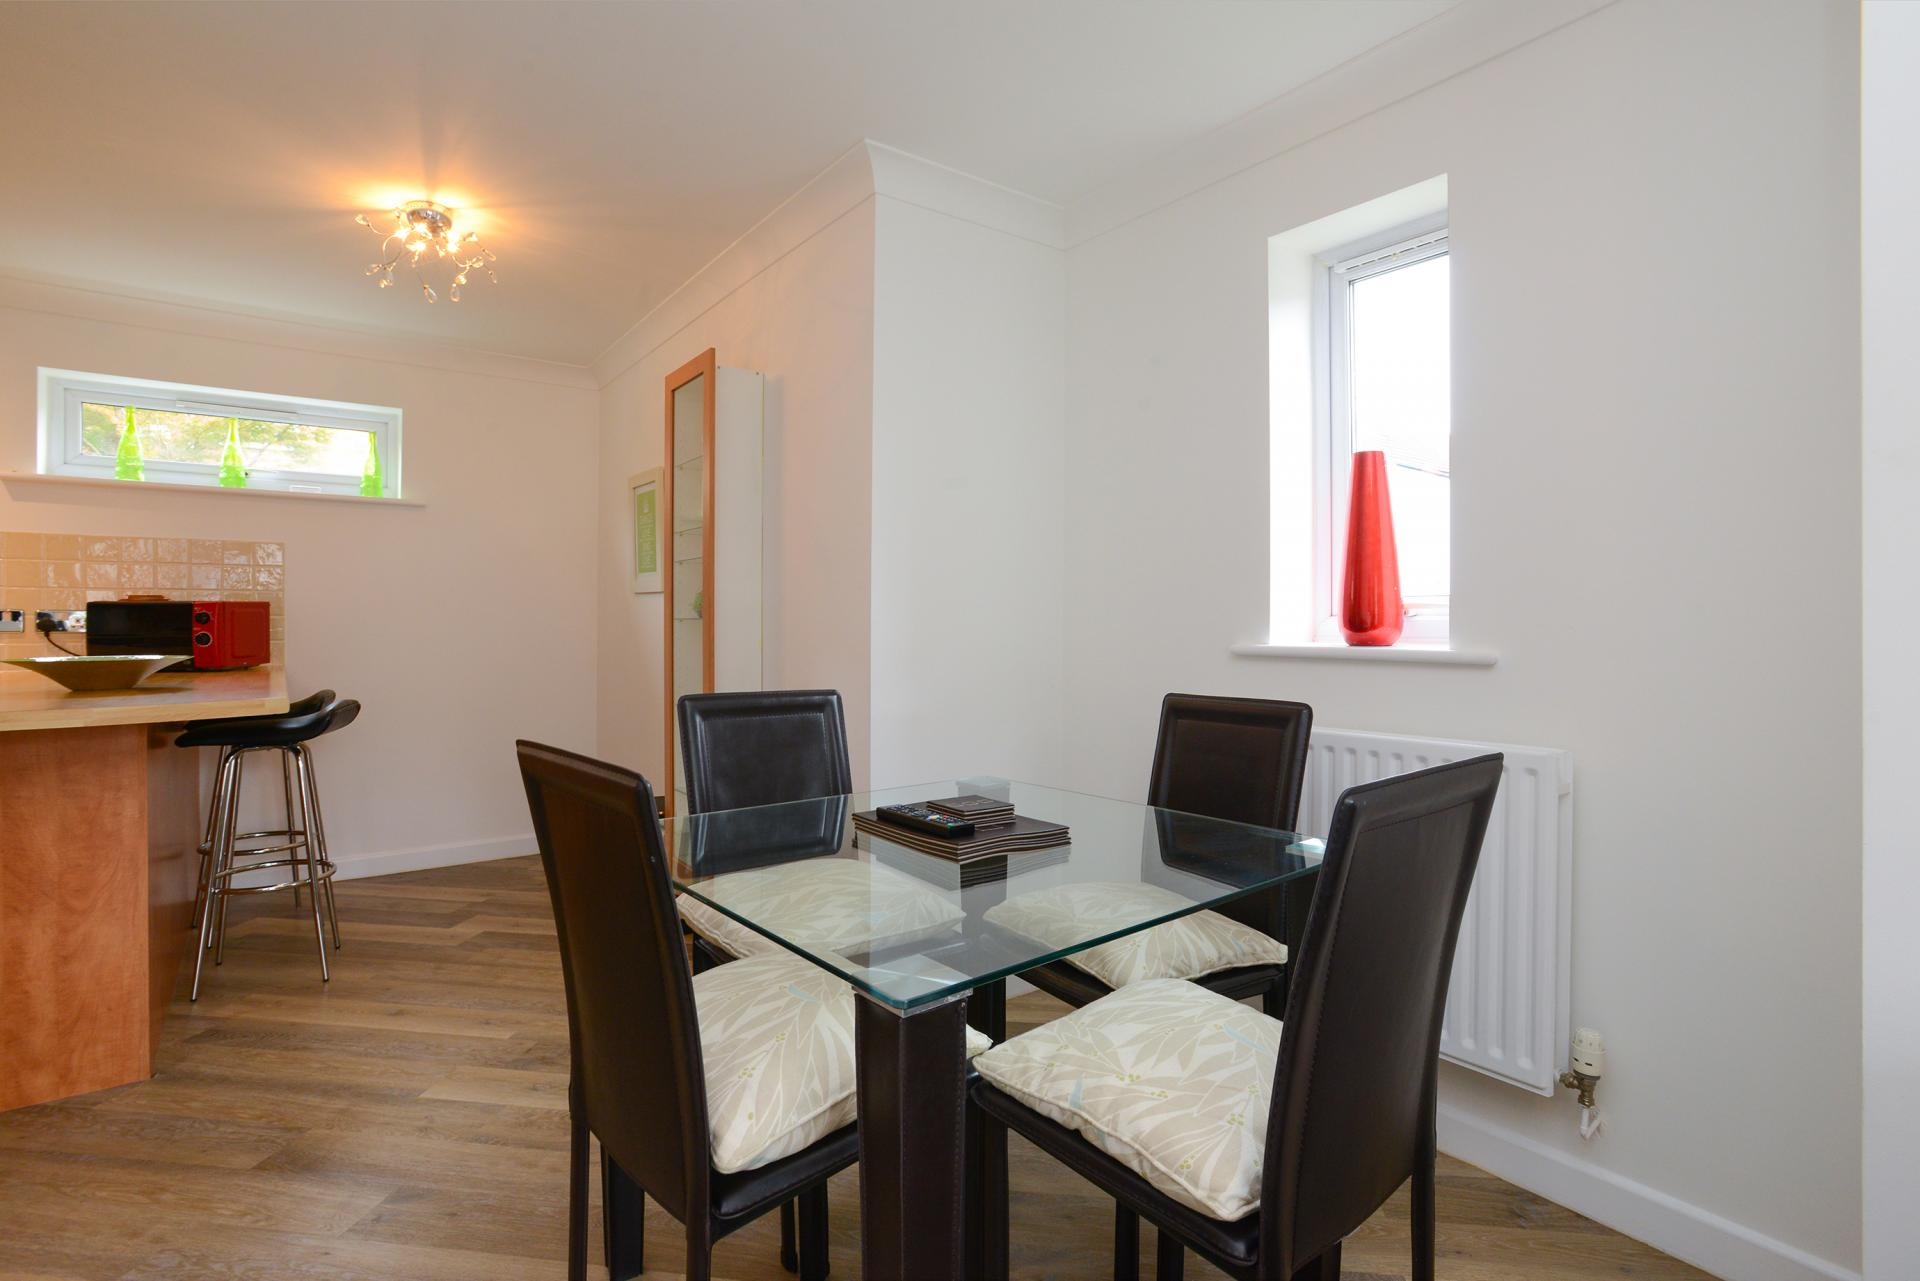 Dining area at Edward's Court Apartment, West Bridgford, Nottingham - Citybase Apartments